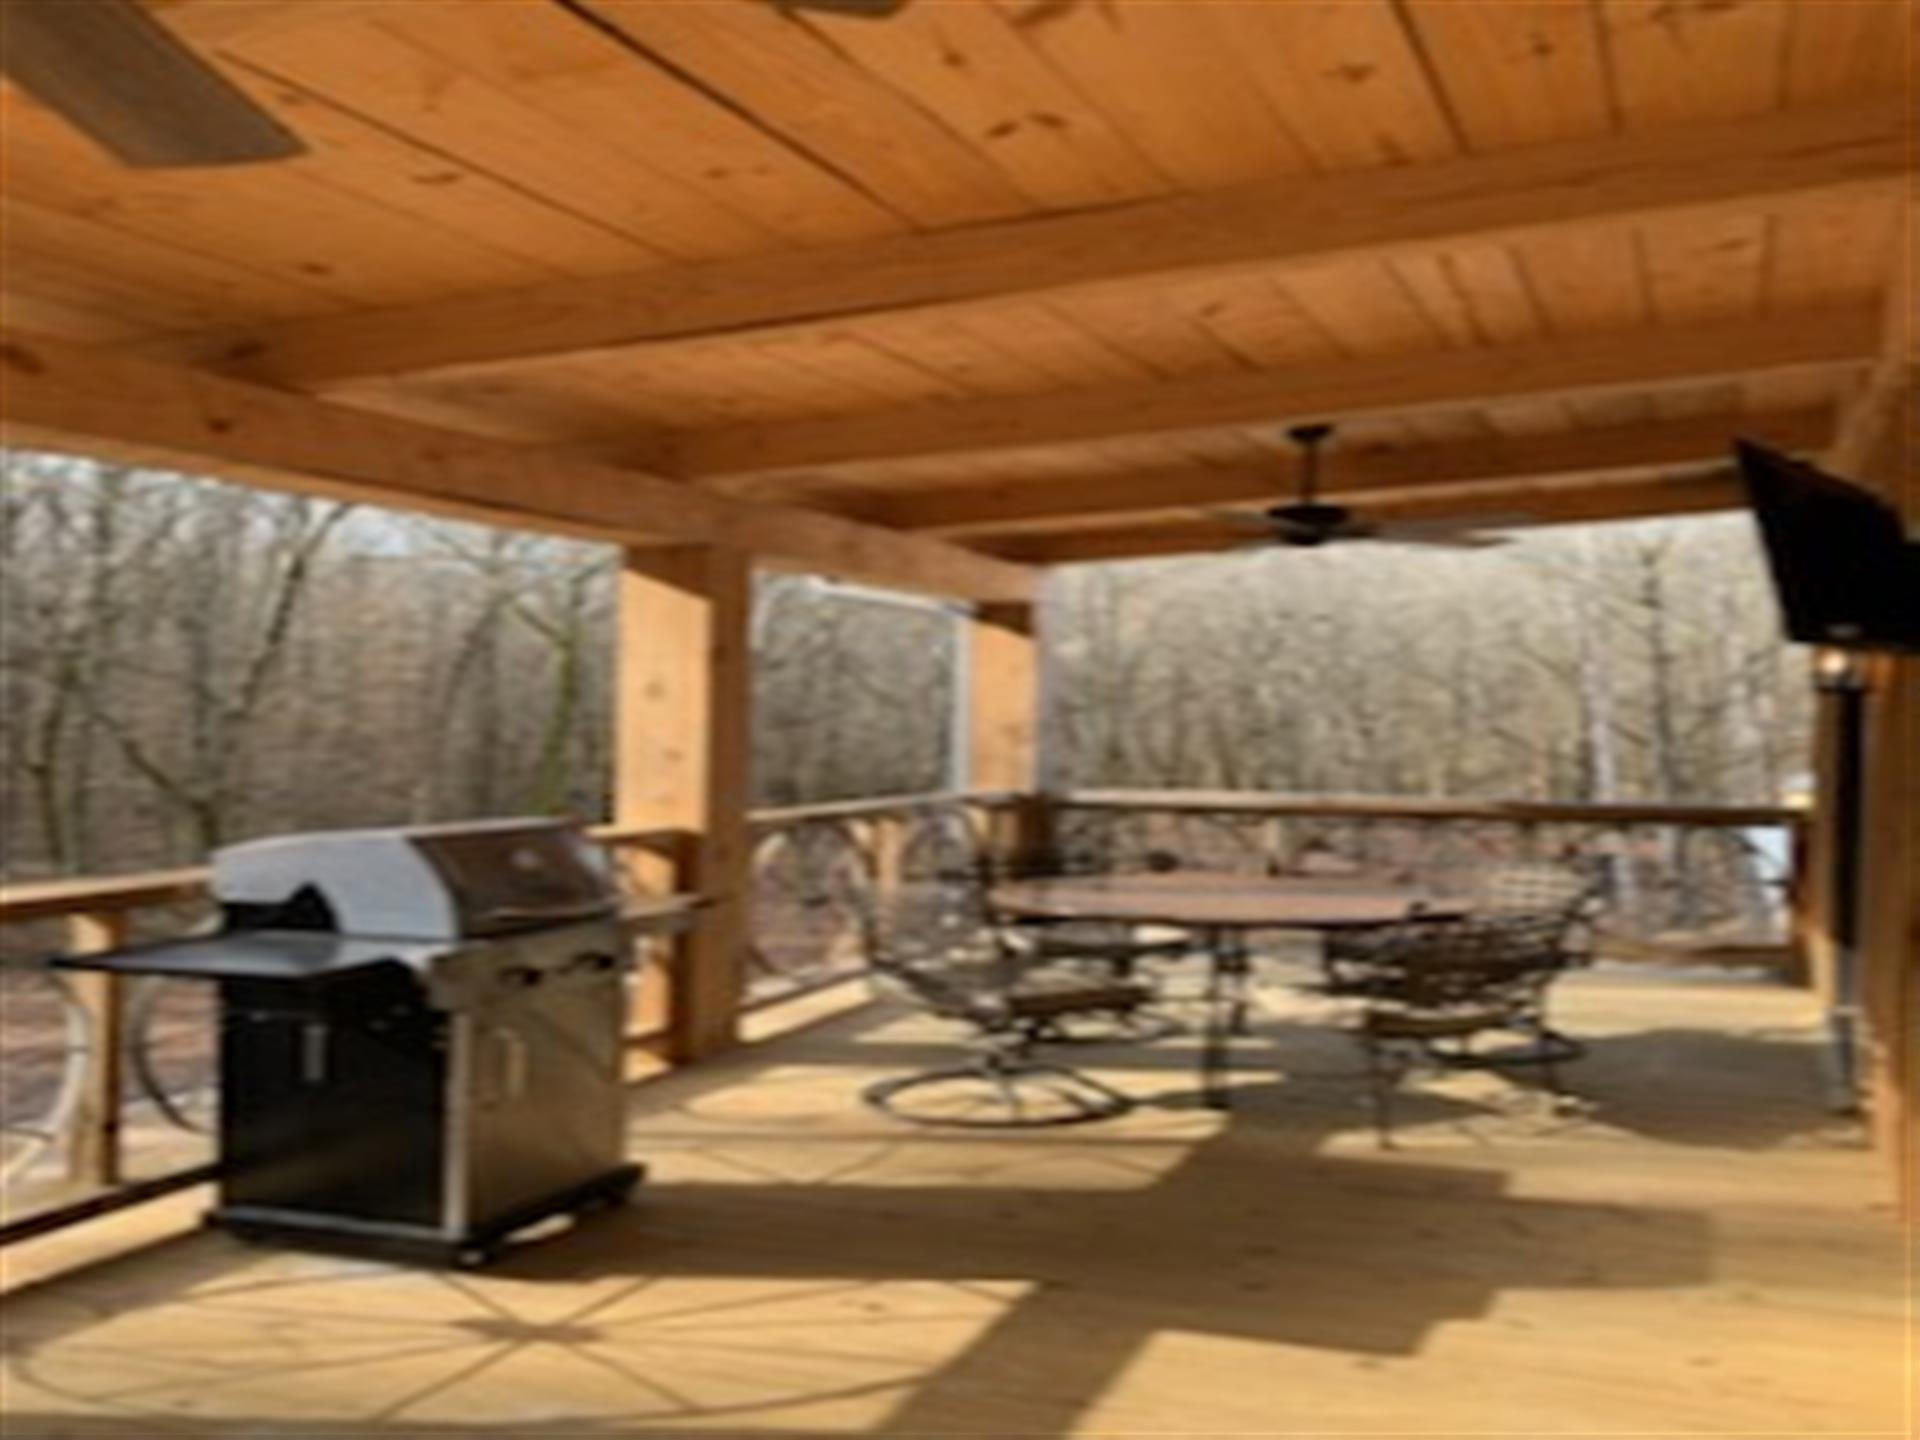 all wooden outside deck with grill and table with chairs and ceiling fan above. trees in the background